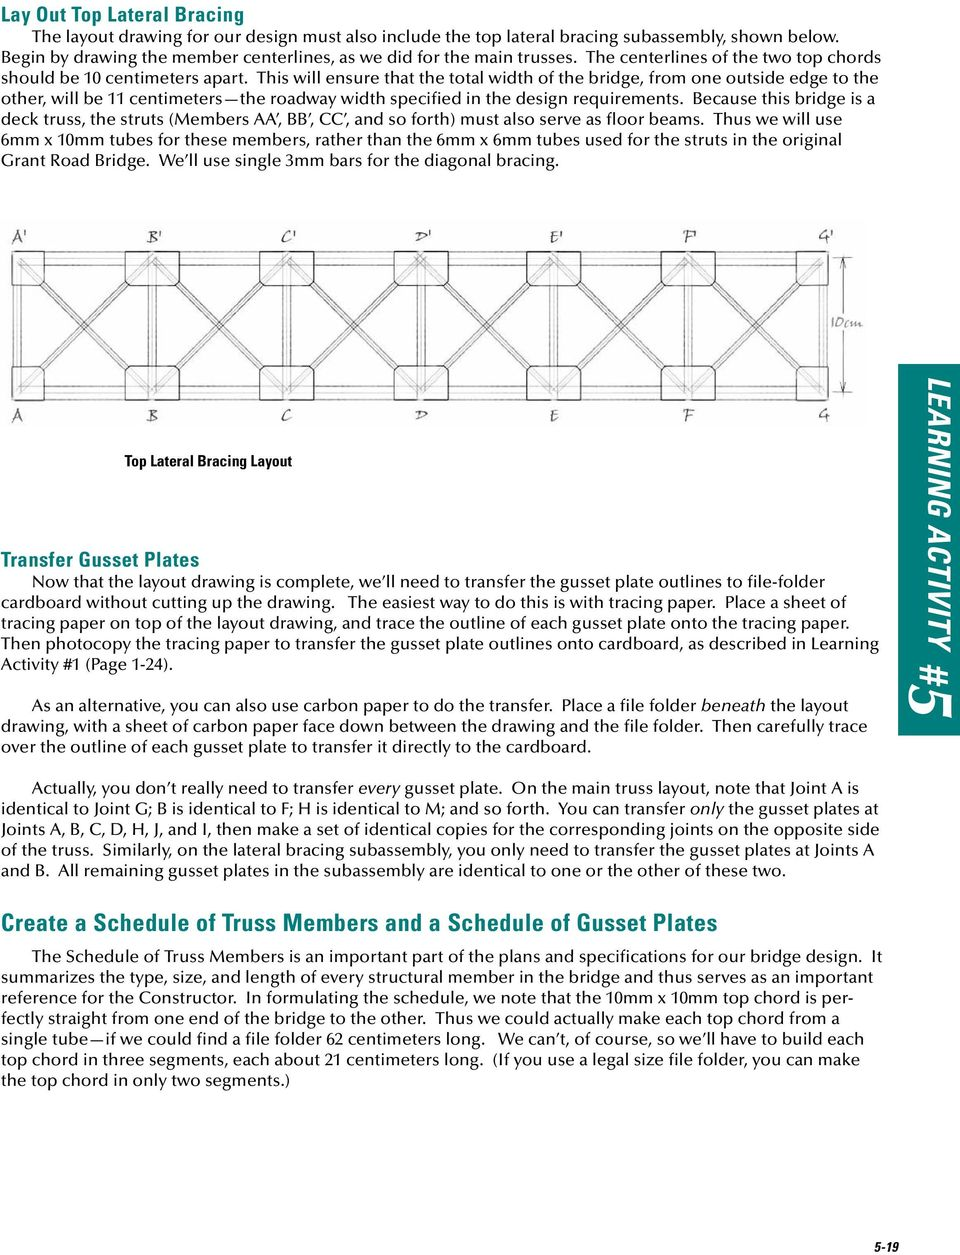 Design And Build A Model Truss Bridge Pdf Diagram Aircraft Software This Will Ensure That The Total Width Of From One Outside Edge To